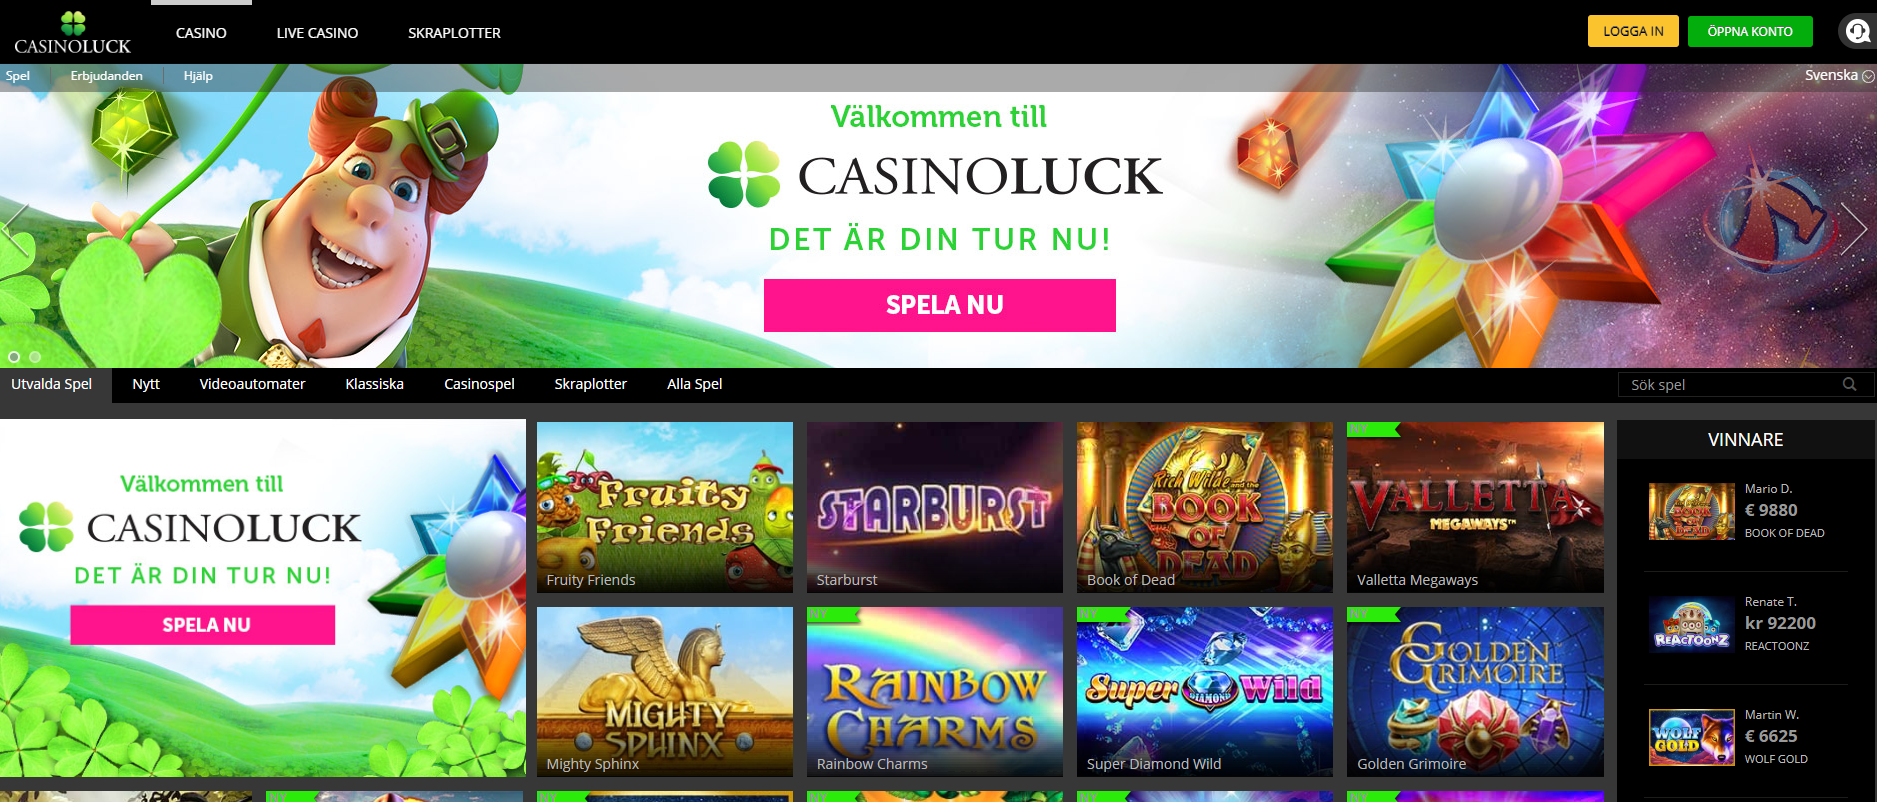 CasinoLuck casino lobby